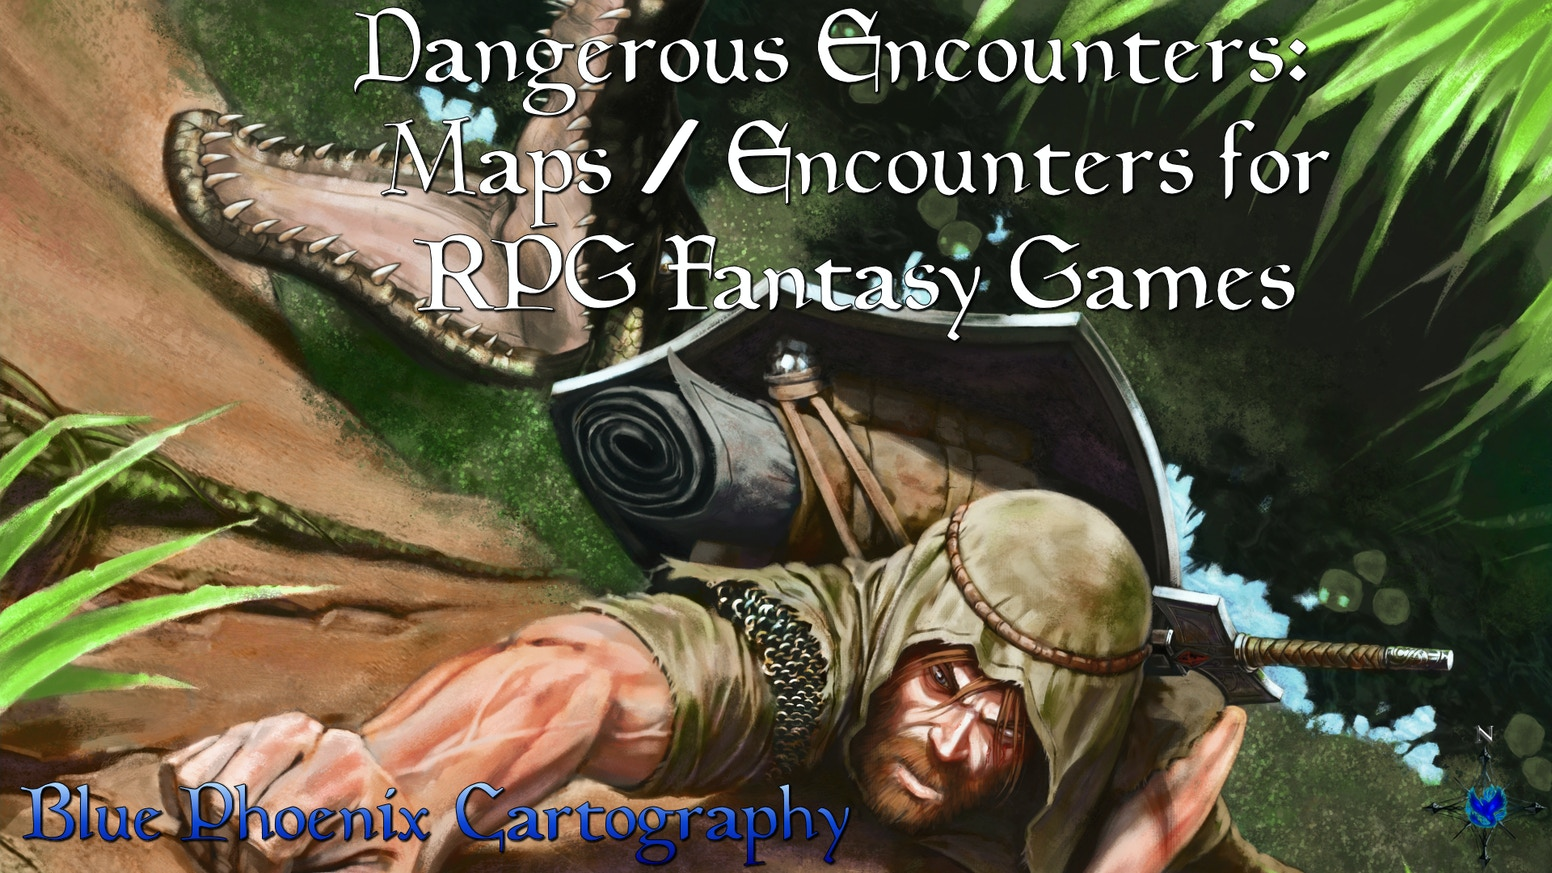 Maps & Encounters for D&D/Pathfinder